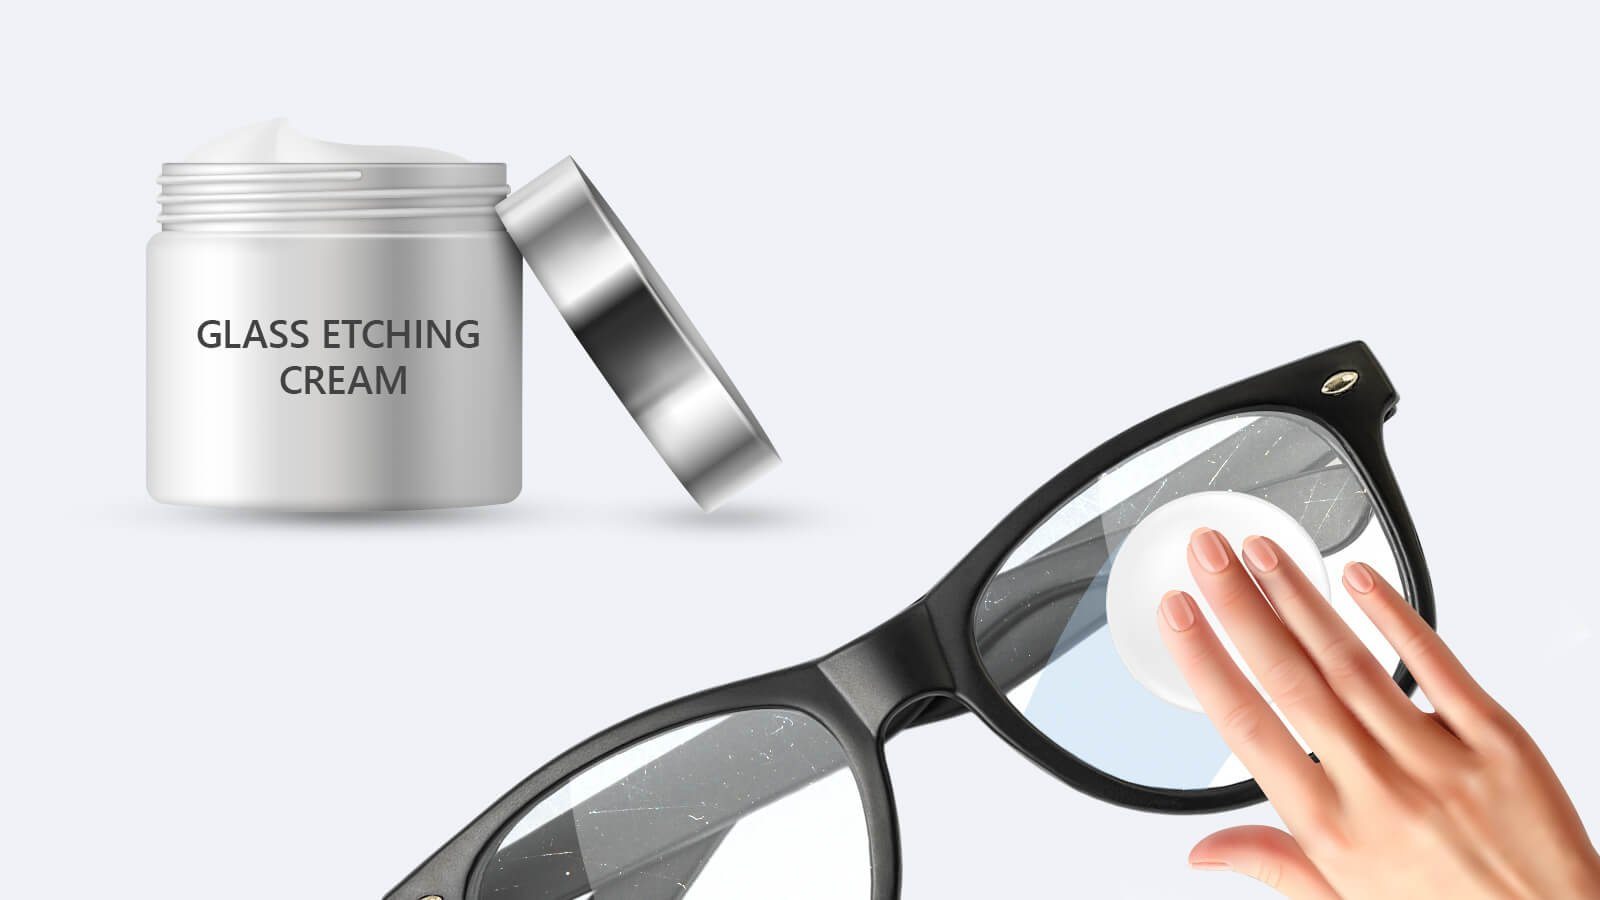 Remove scratches by using Glass Etching Cream